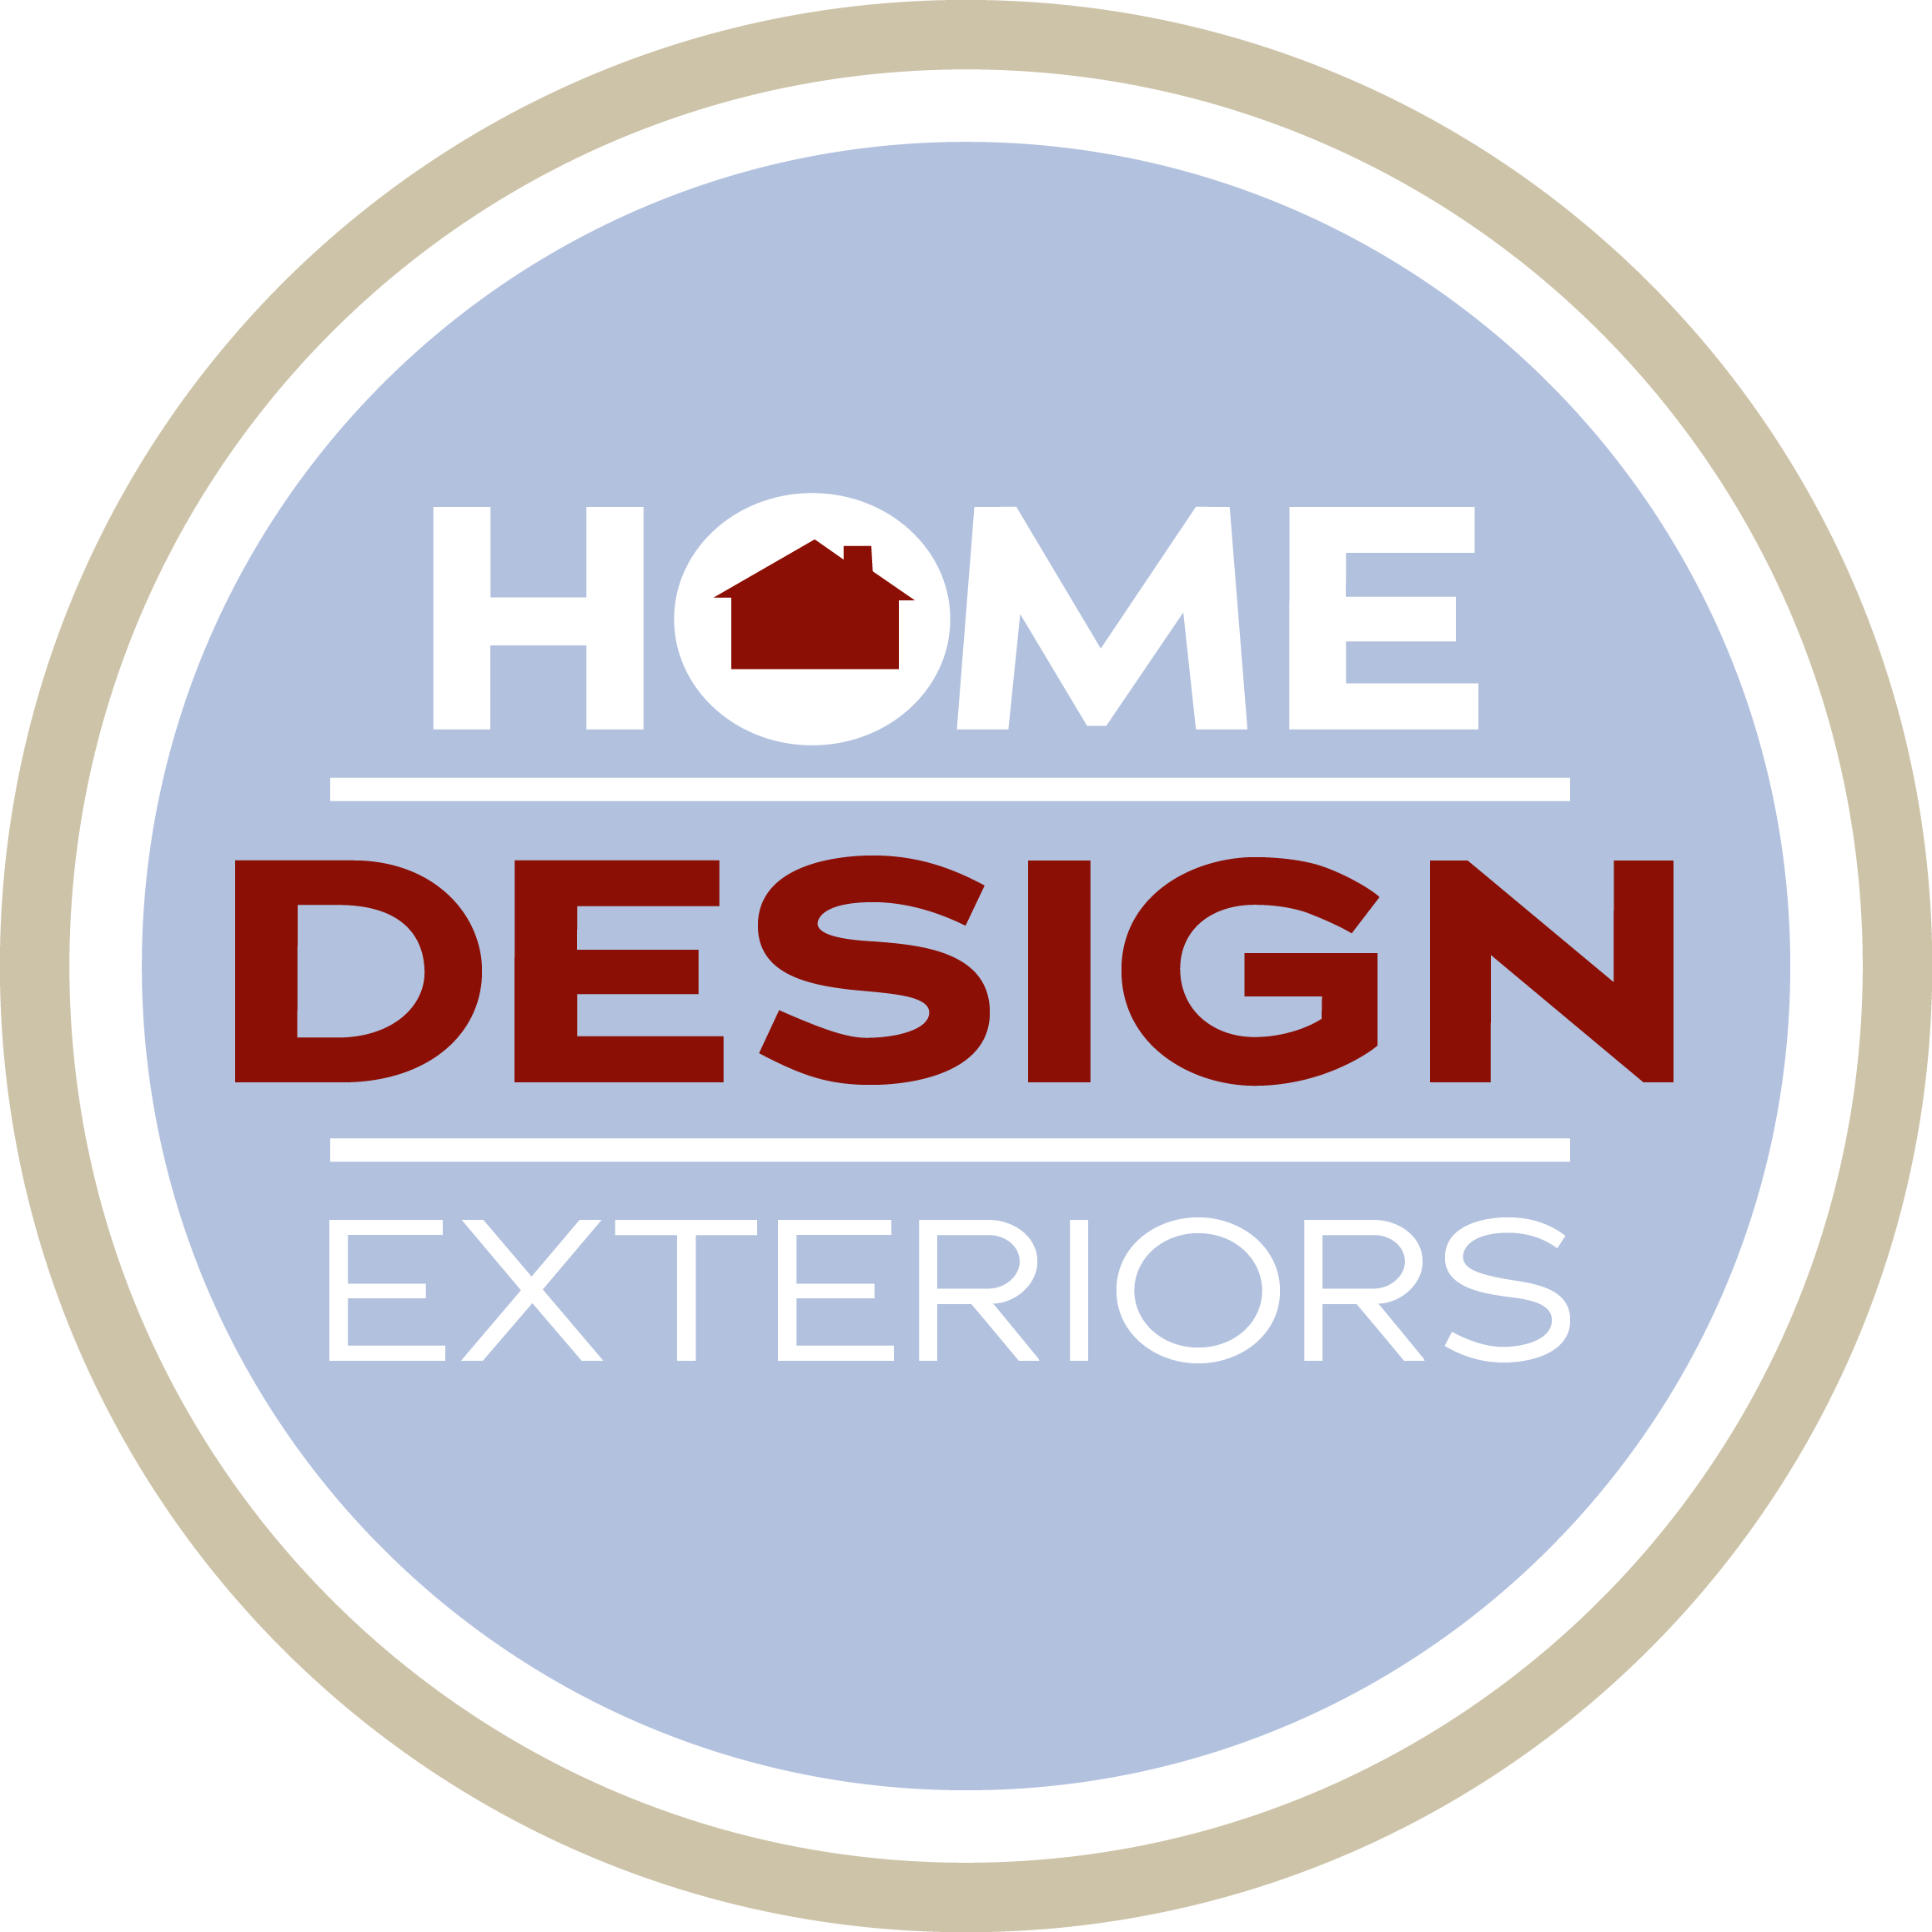 Home design exteriors parker co business directory for Home design directory